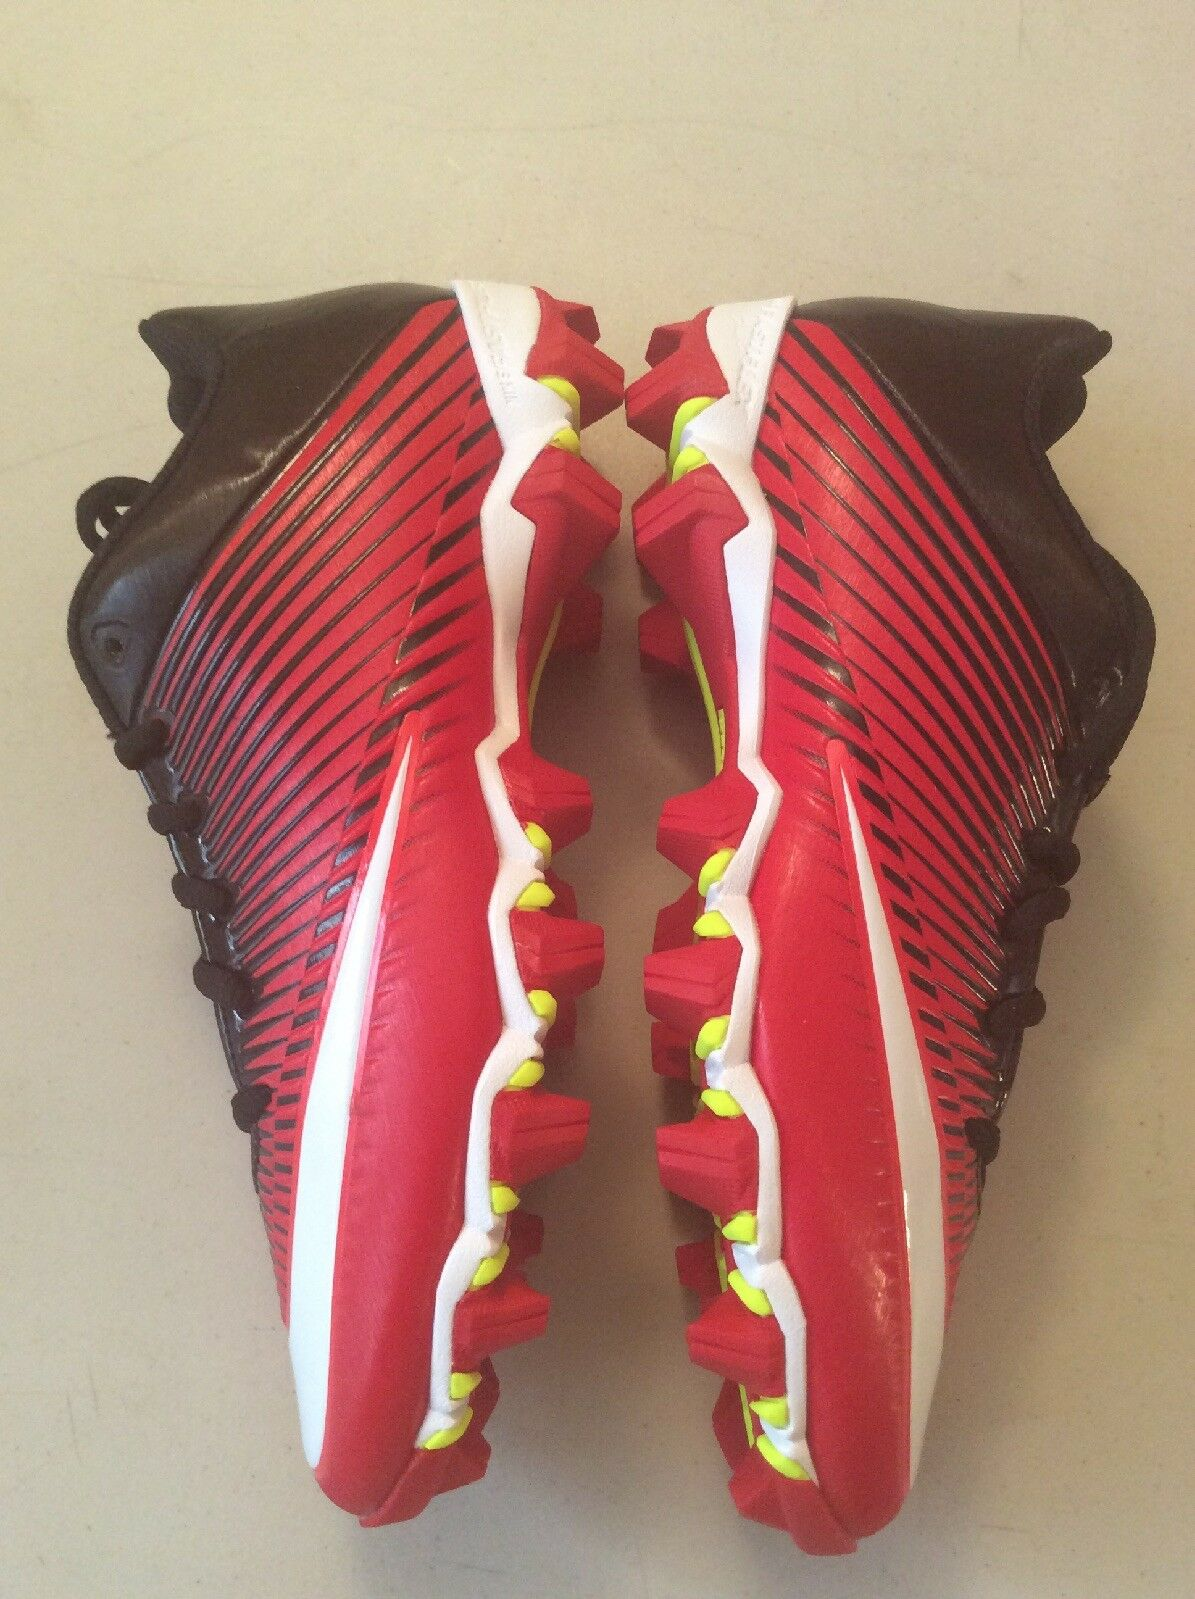 Nike Vapor Shark 2 Size 6.5 Red Red Red White Black Football Cleats 833391-610 Mens 20fba2